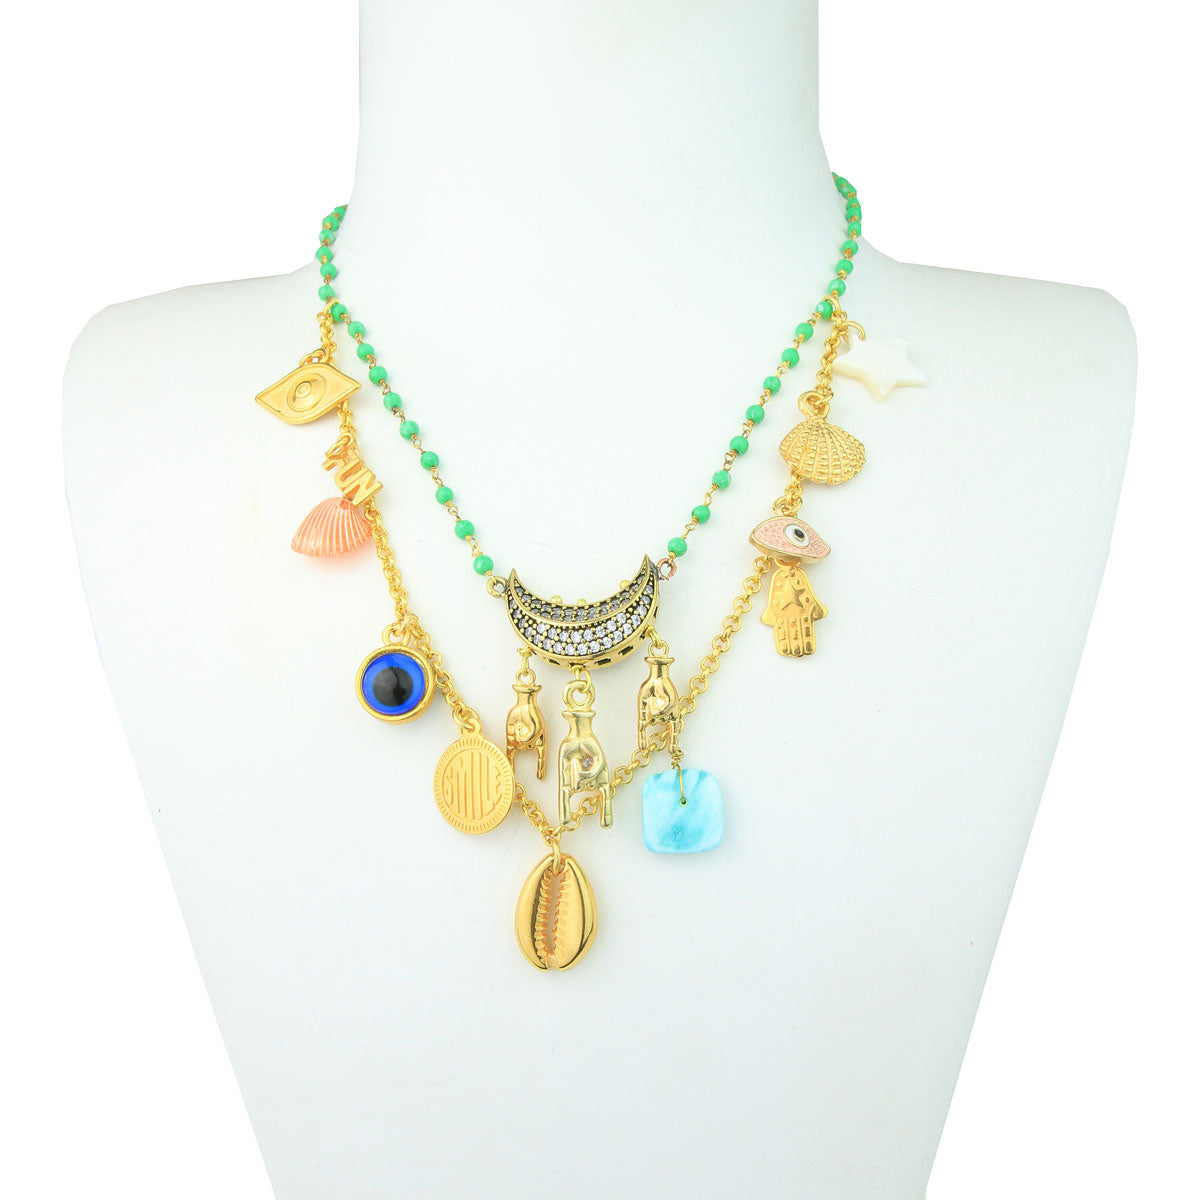 Summer necklace with shells, charms and chrysoprase